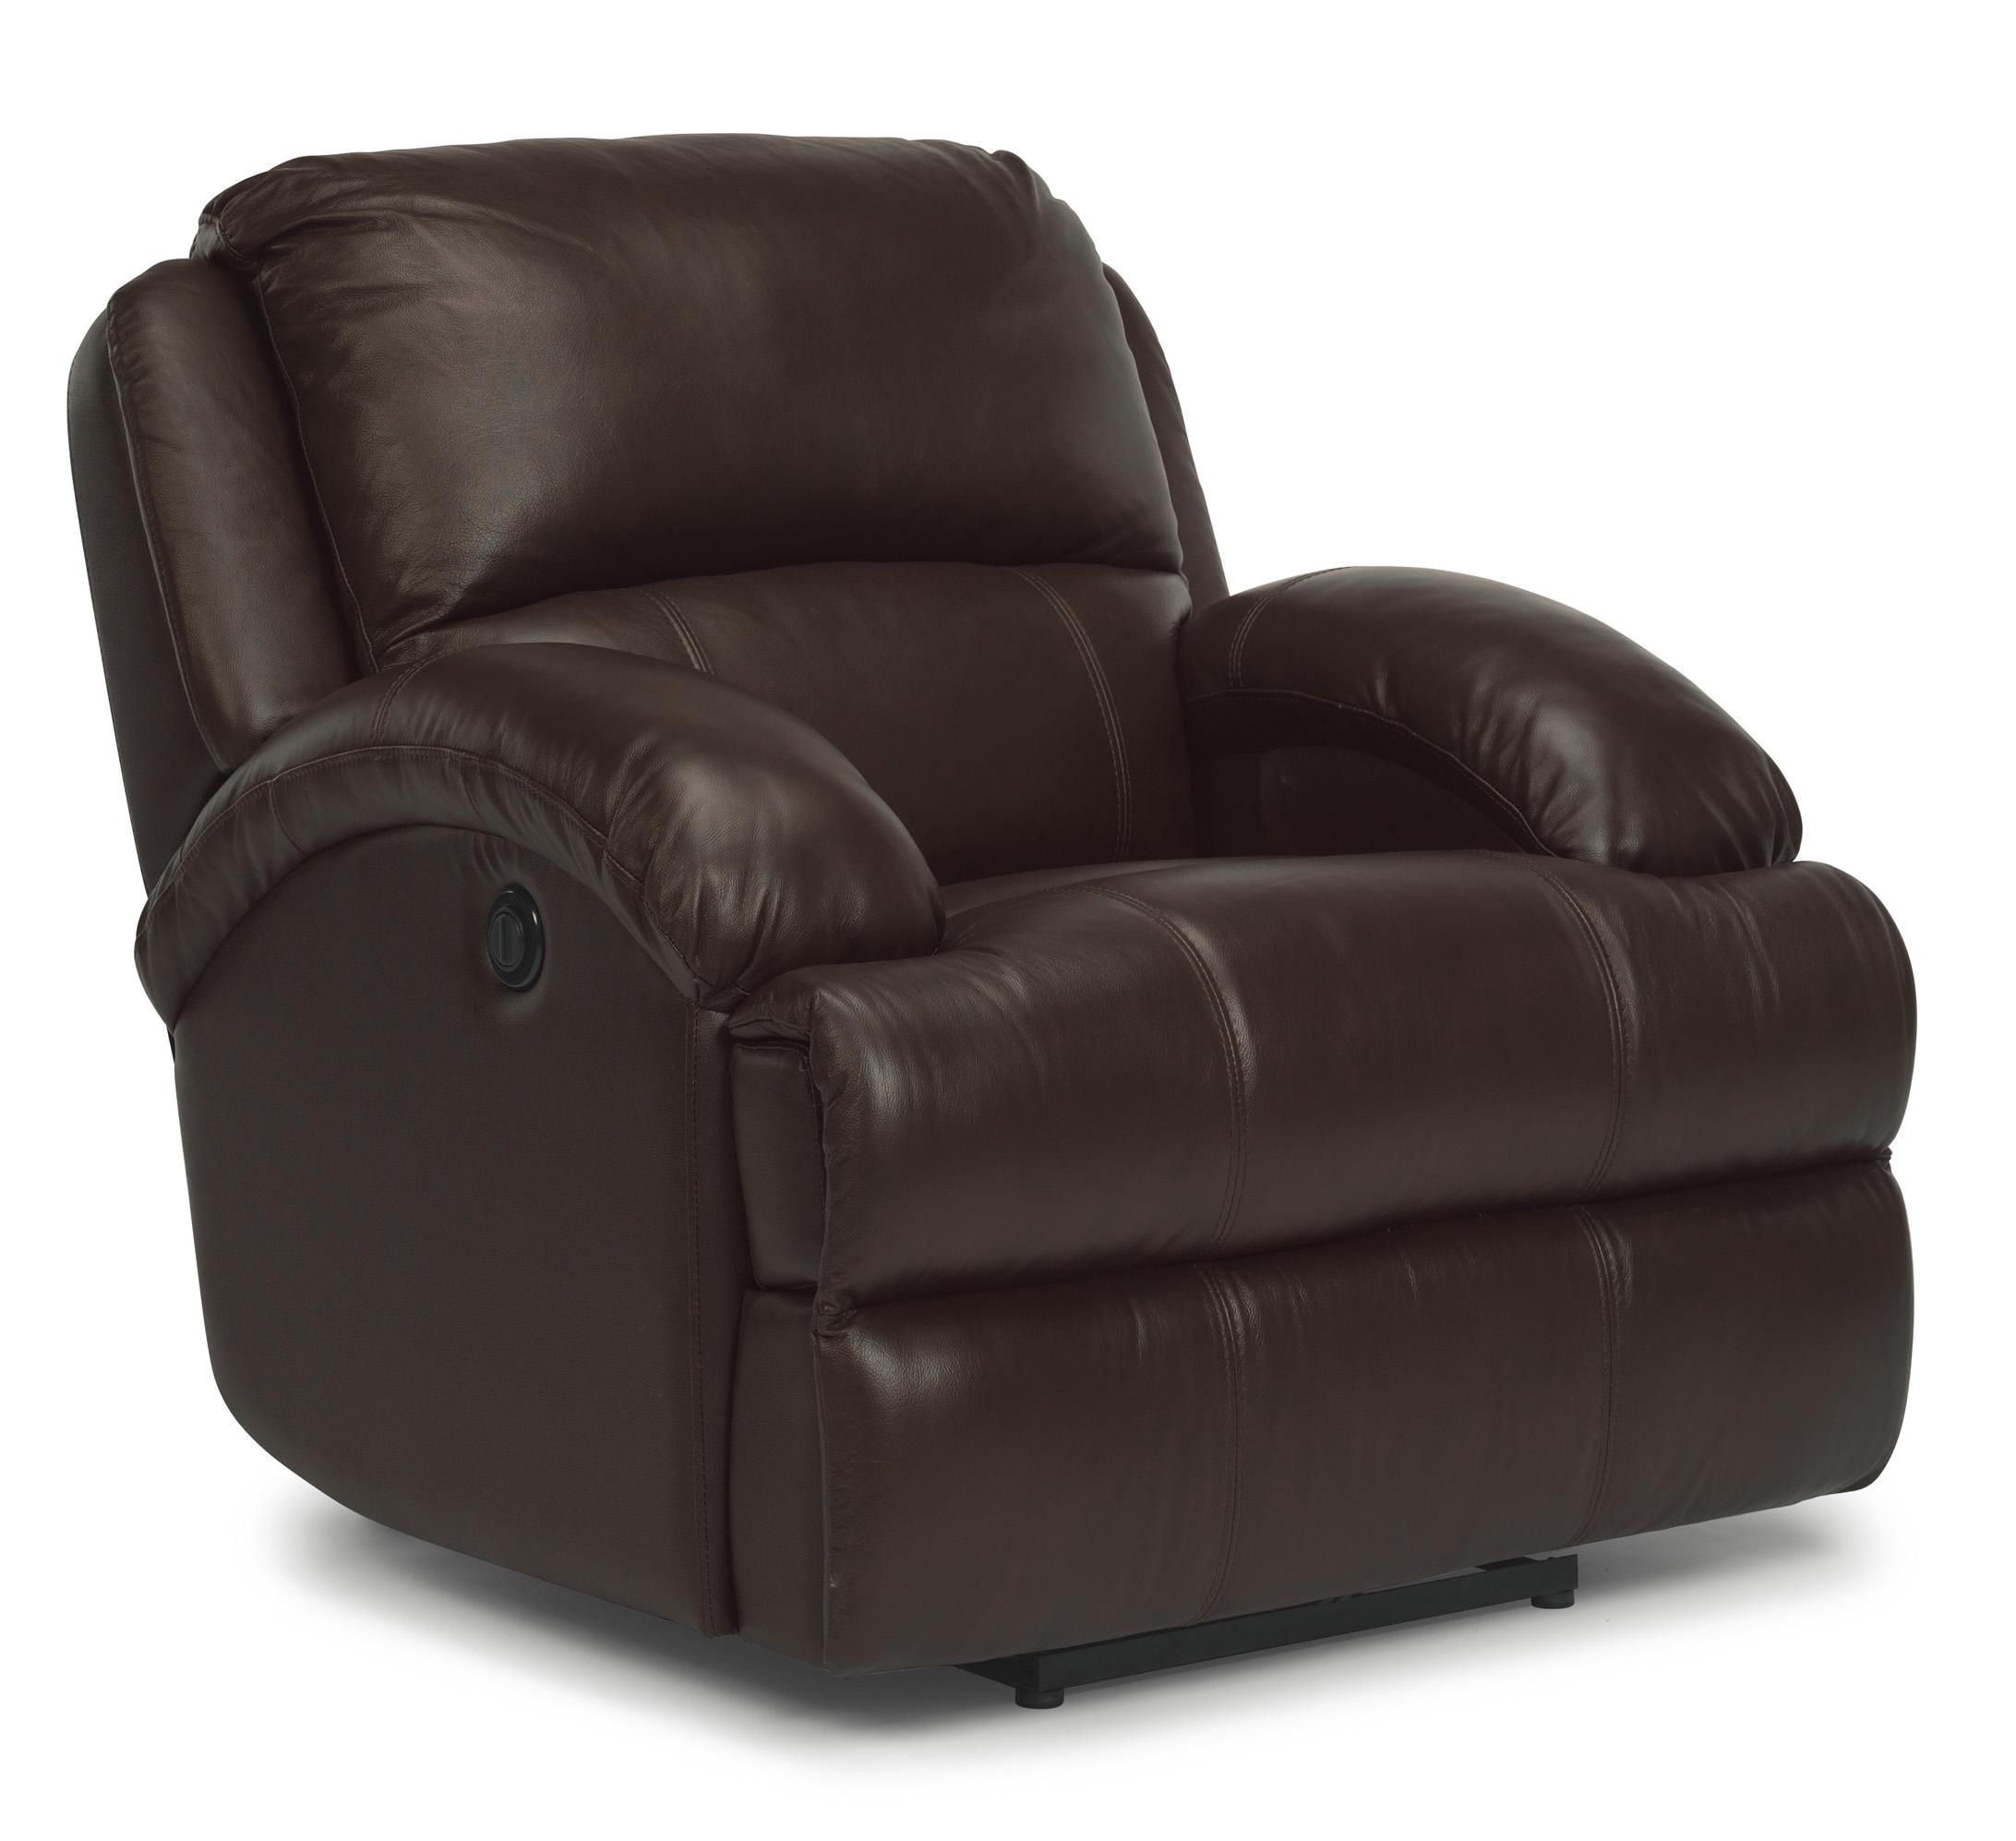 Awesome Latitudes Fast Lane Leather Power Recliner By Flexsteel Caraccident5 Cool Chair Designs And Ideas Caraccident5Info